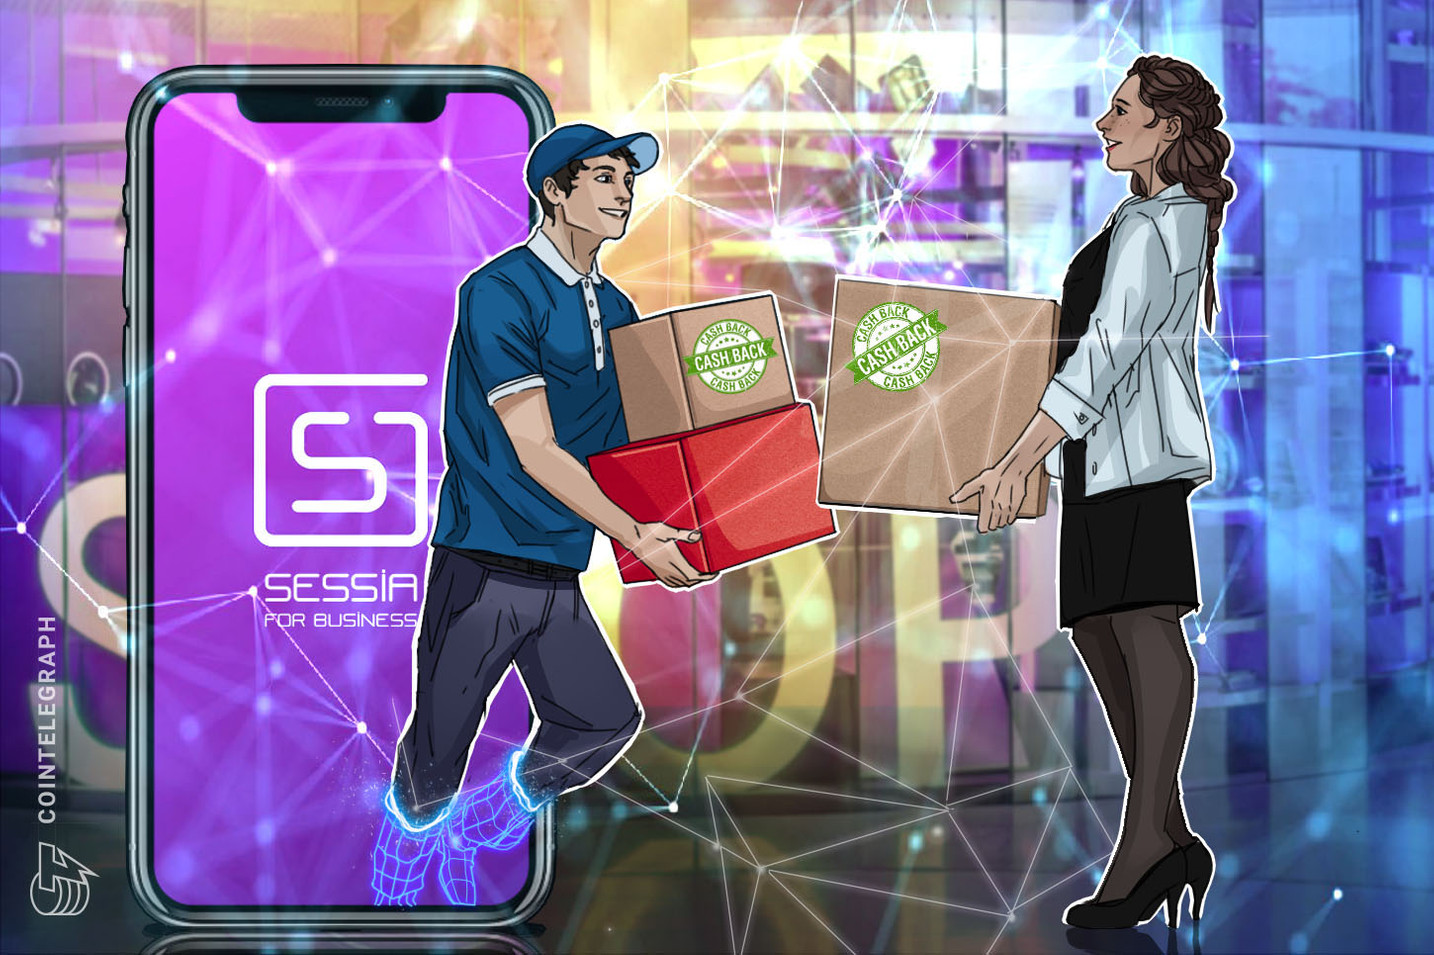 Blockchain-Based App Gives Firms an Alternative to Pricey Online Ads